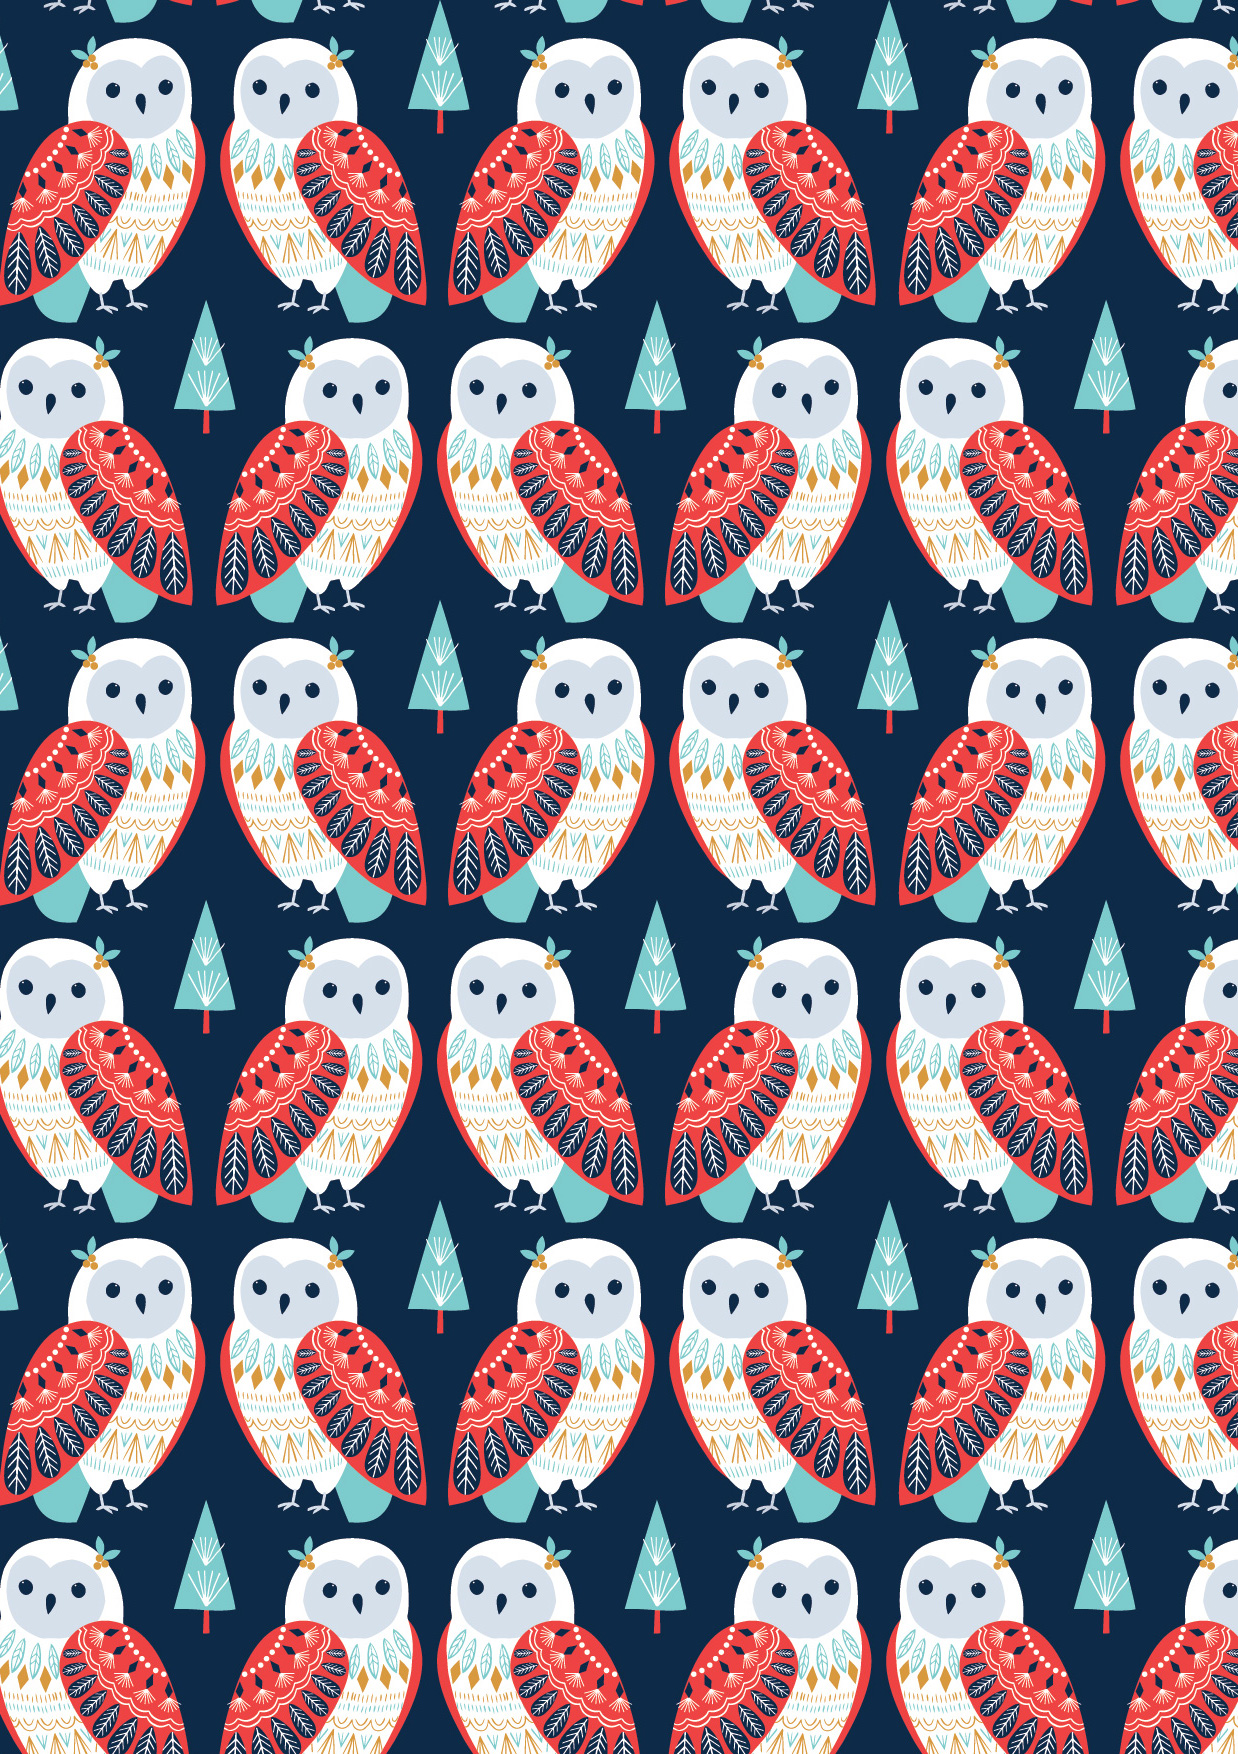 Owls in Navy by Bethan Janine from the Skogen collection for Dashwood Studio #SKOG1532